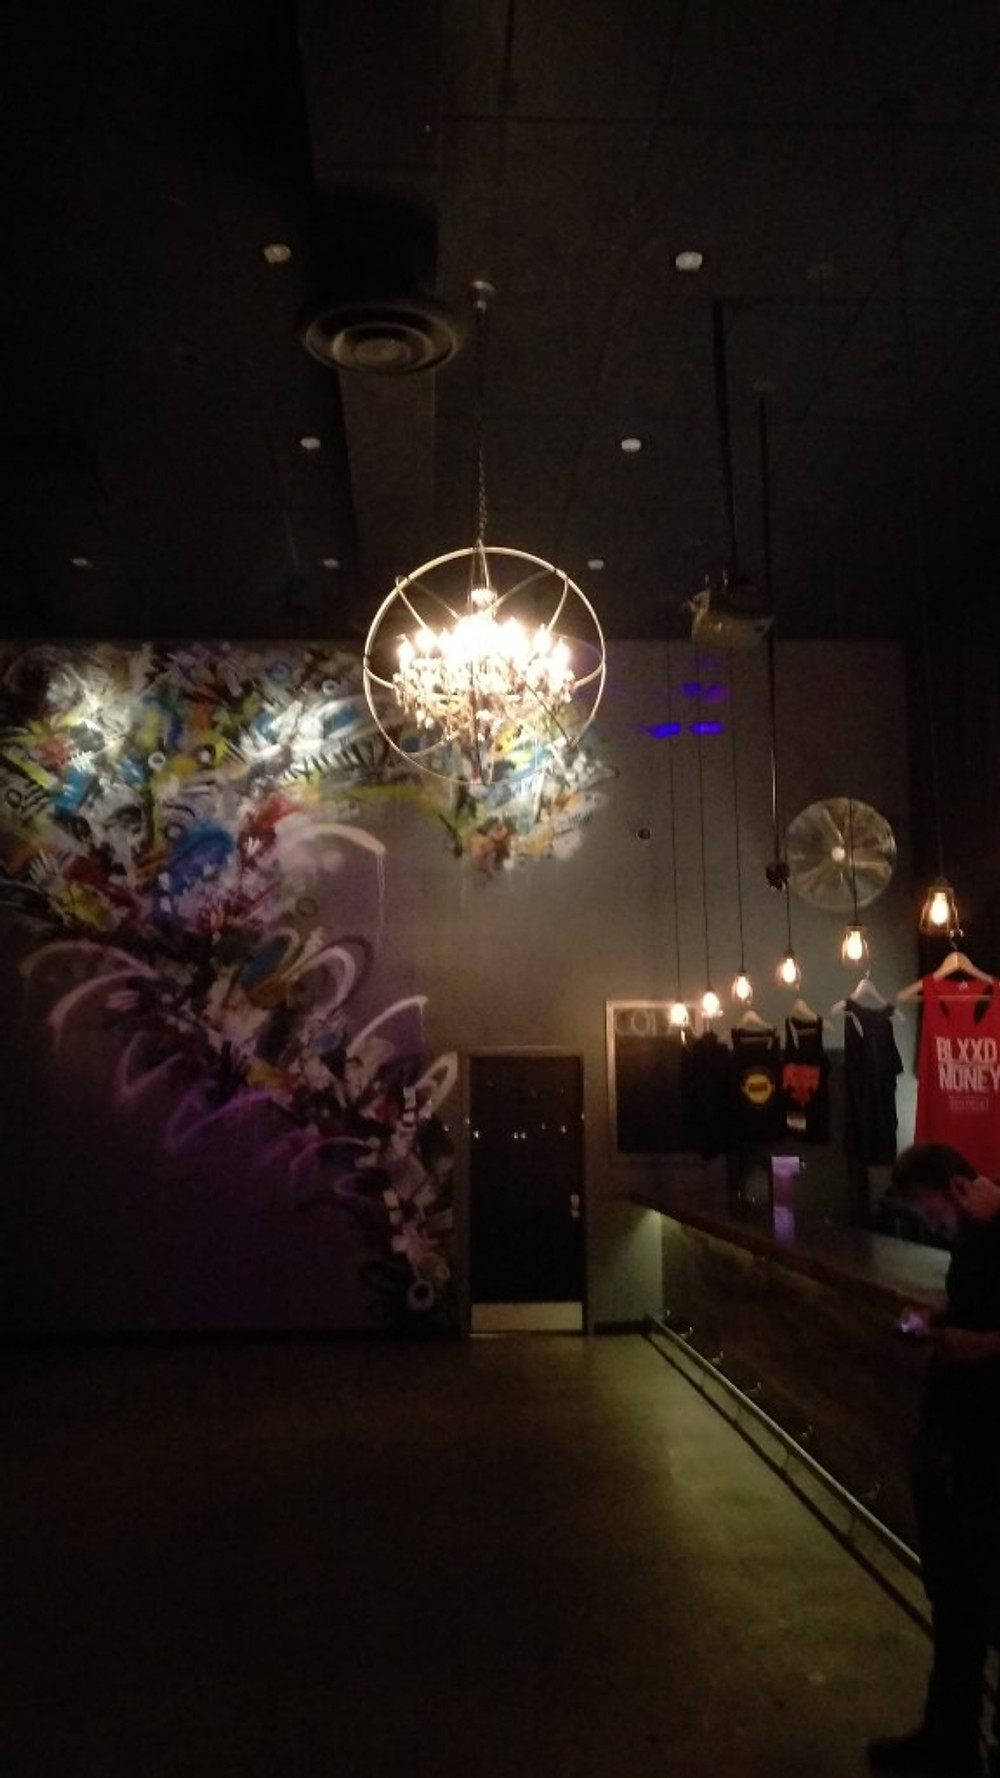 Picture of the main lobby area at Coda with a cool chandelier hanging.